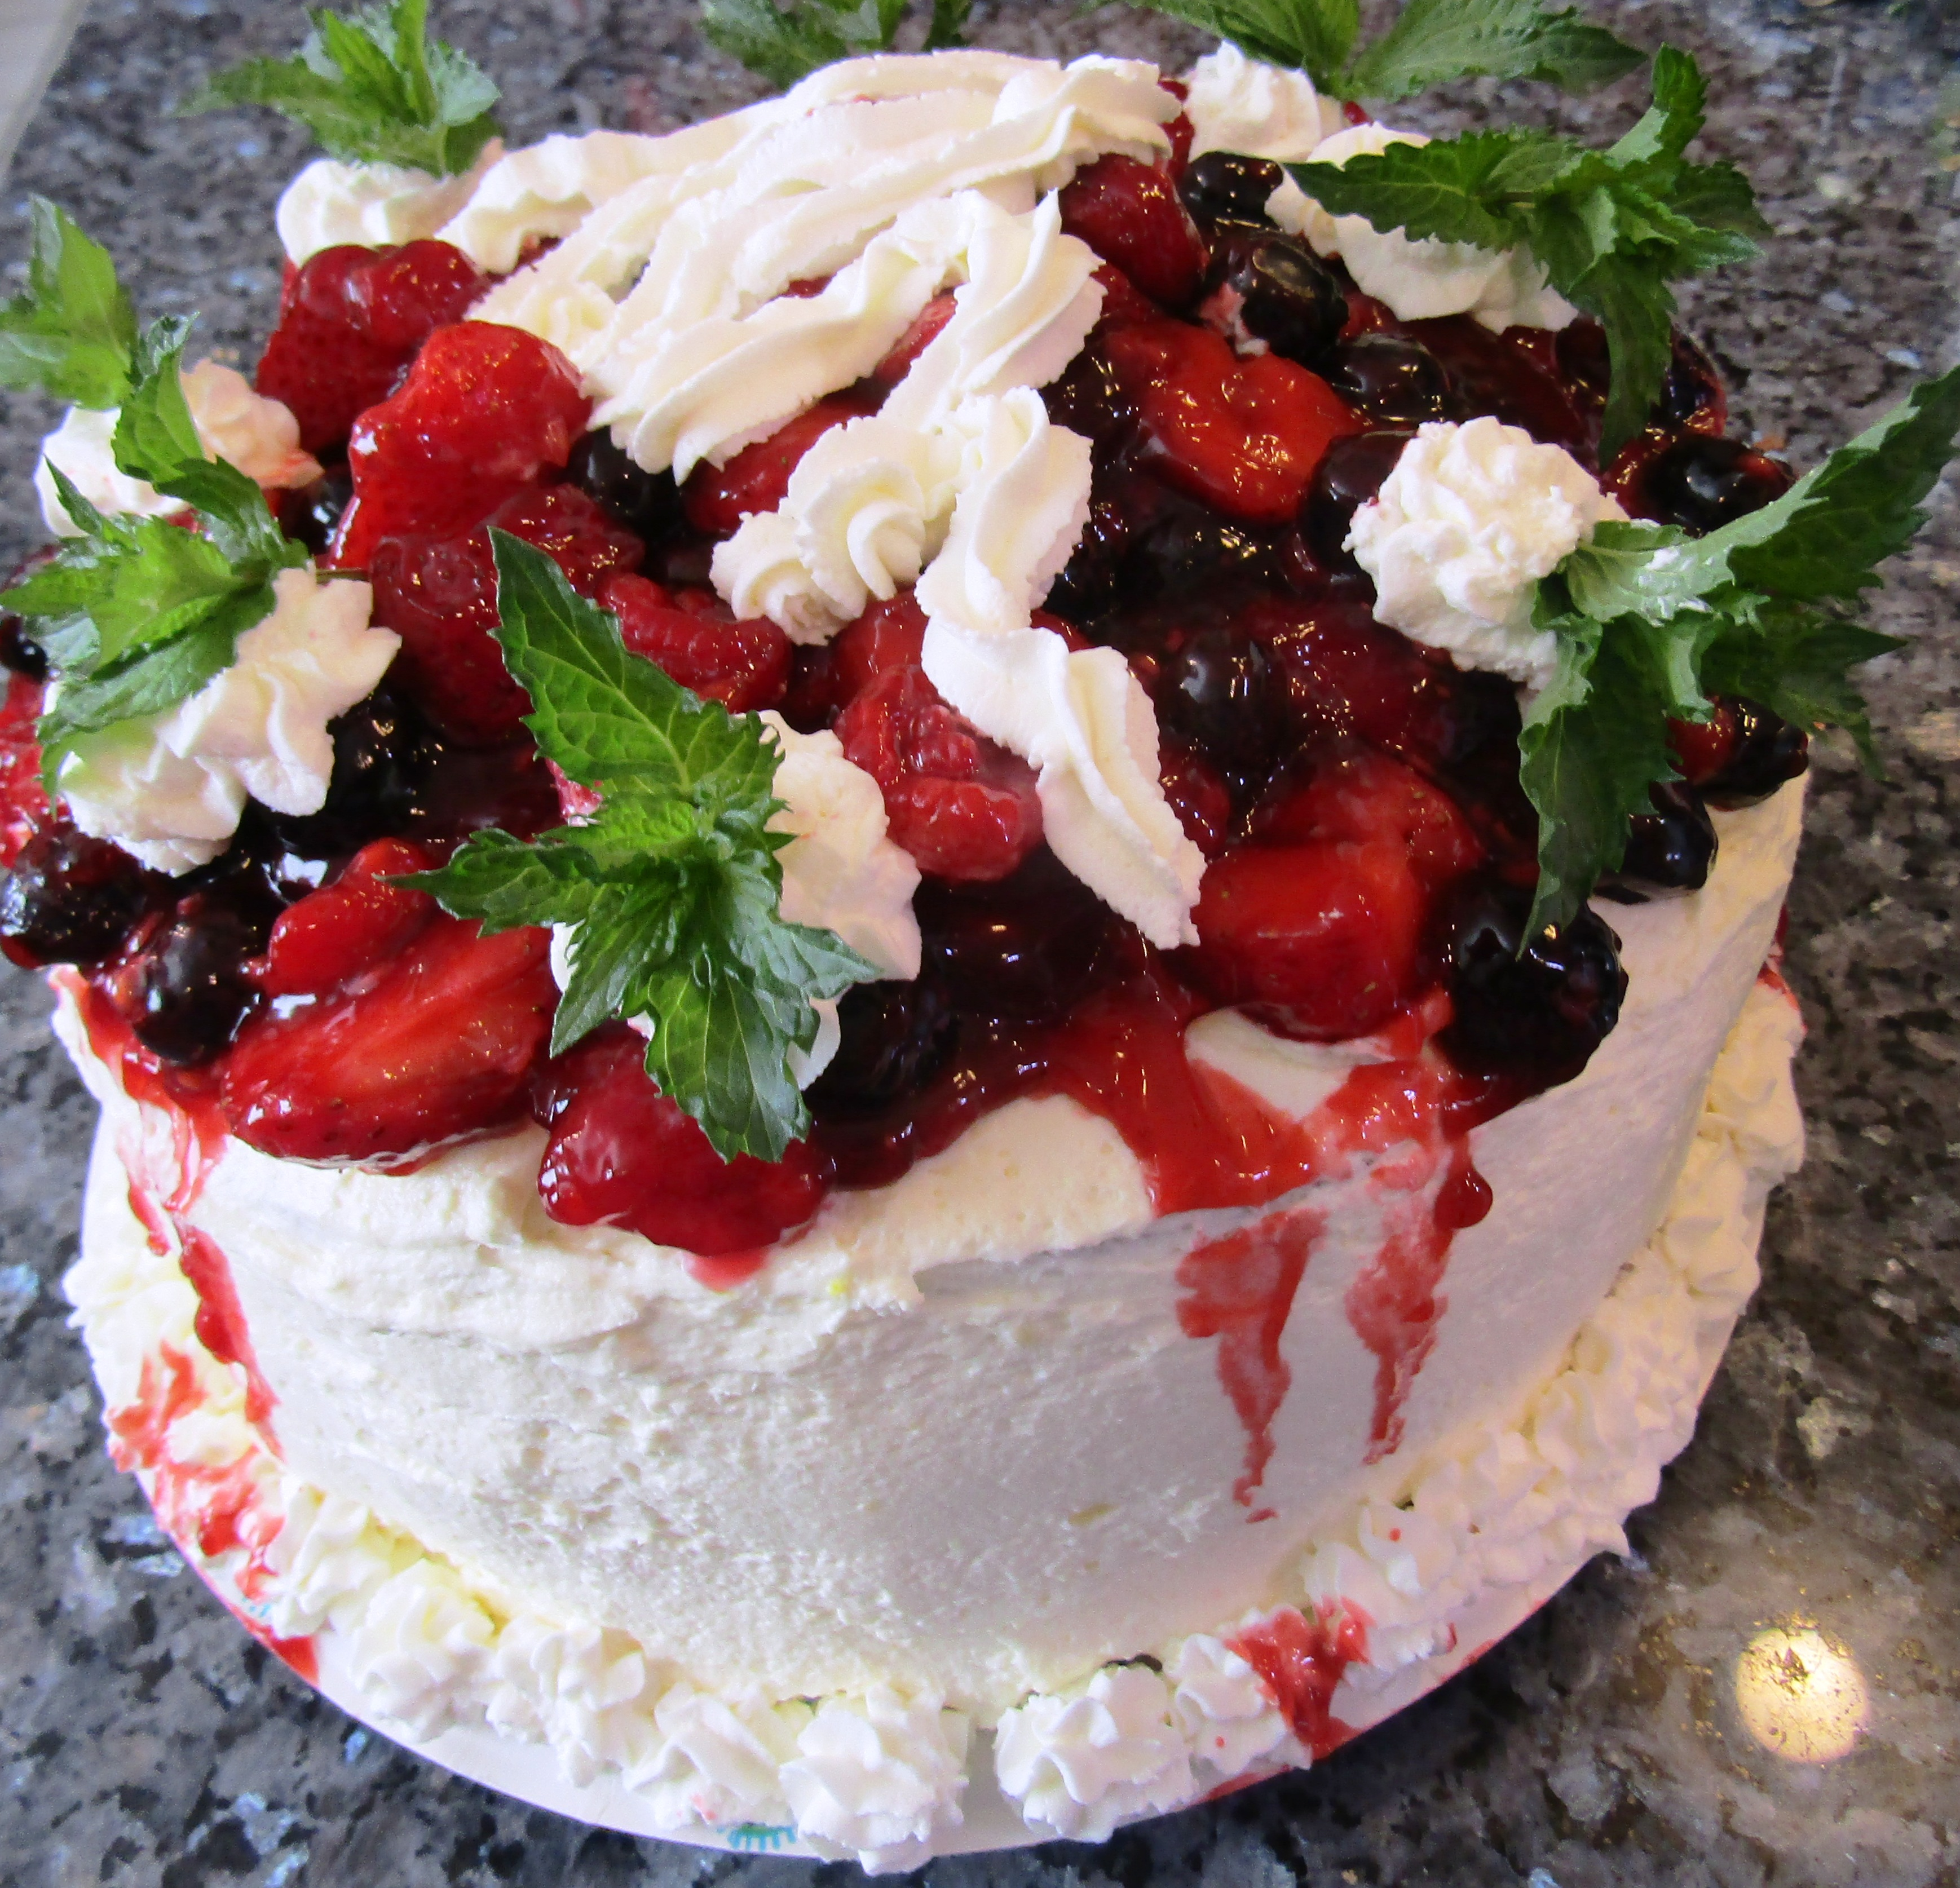 Summer Berries & Cream Cake Recipe